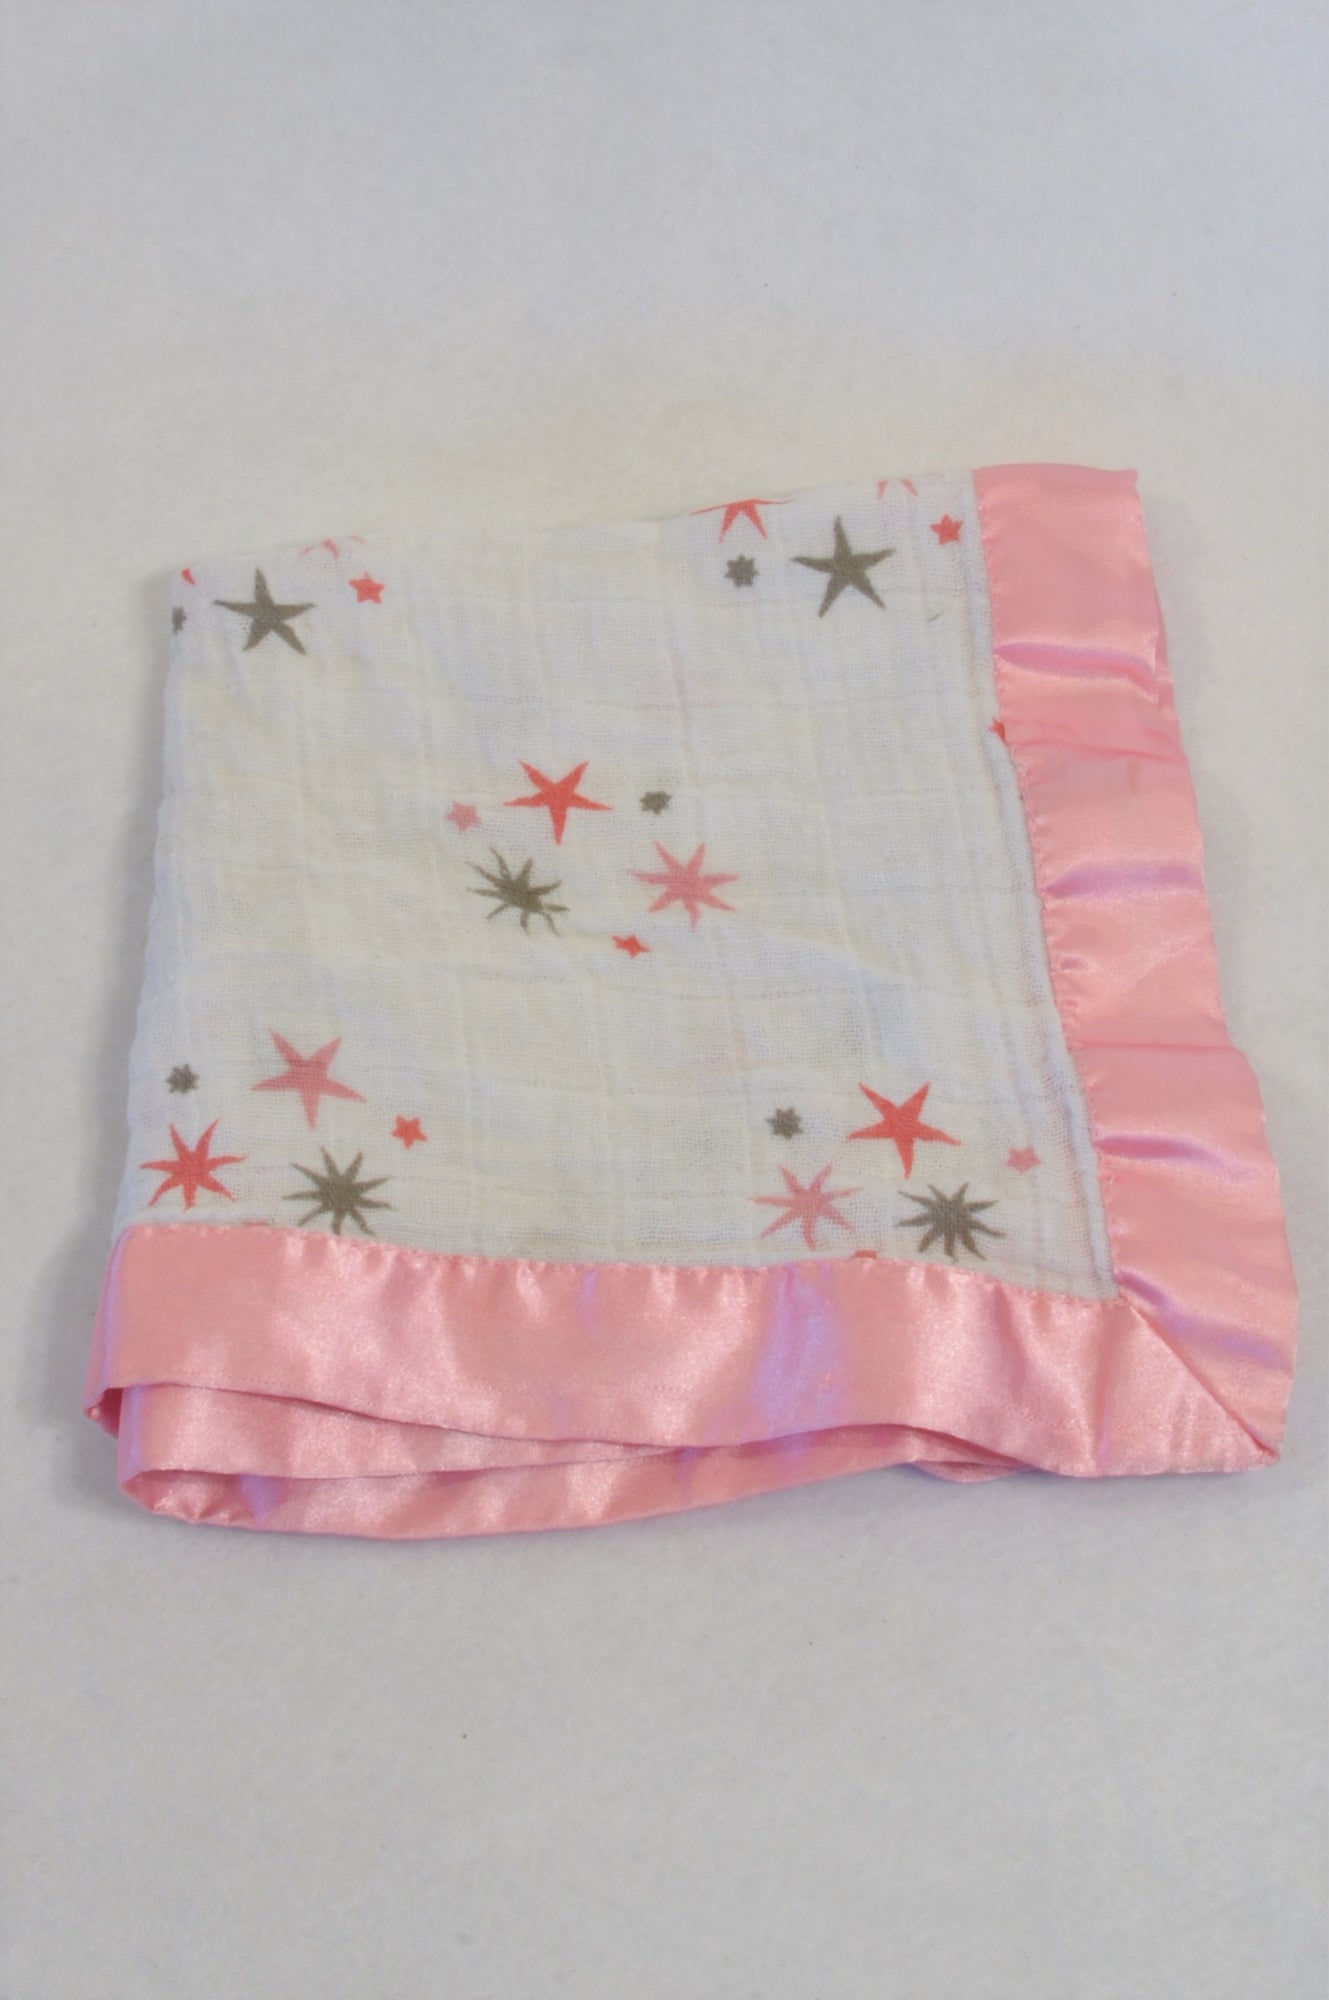 Aden + Anais Pink Trim Star Muslin Burp Cloth Girls N-B to 1 year